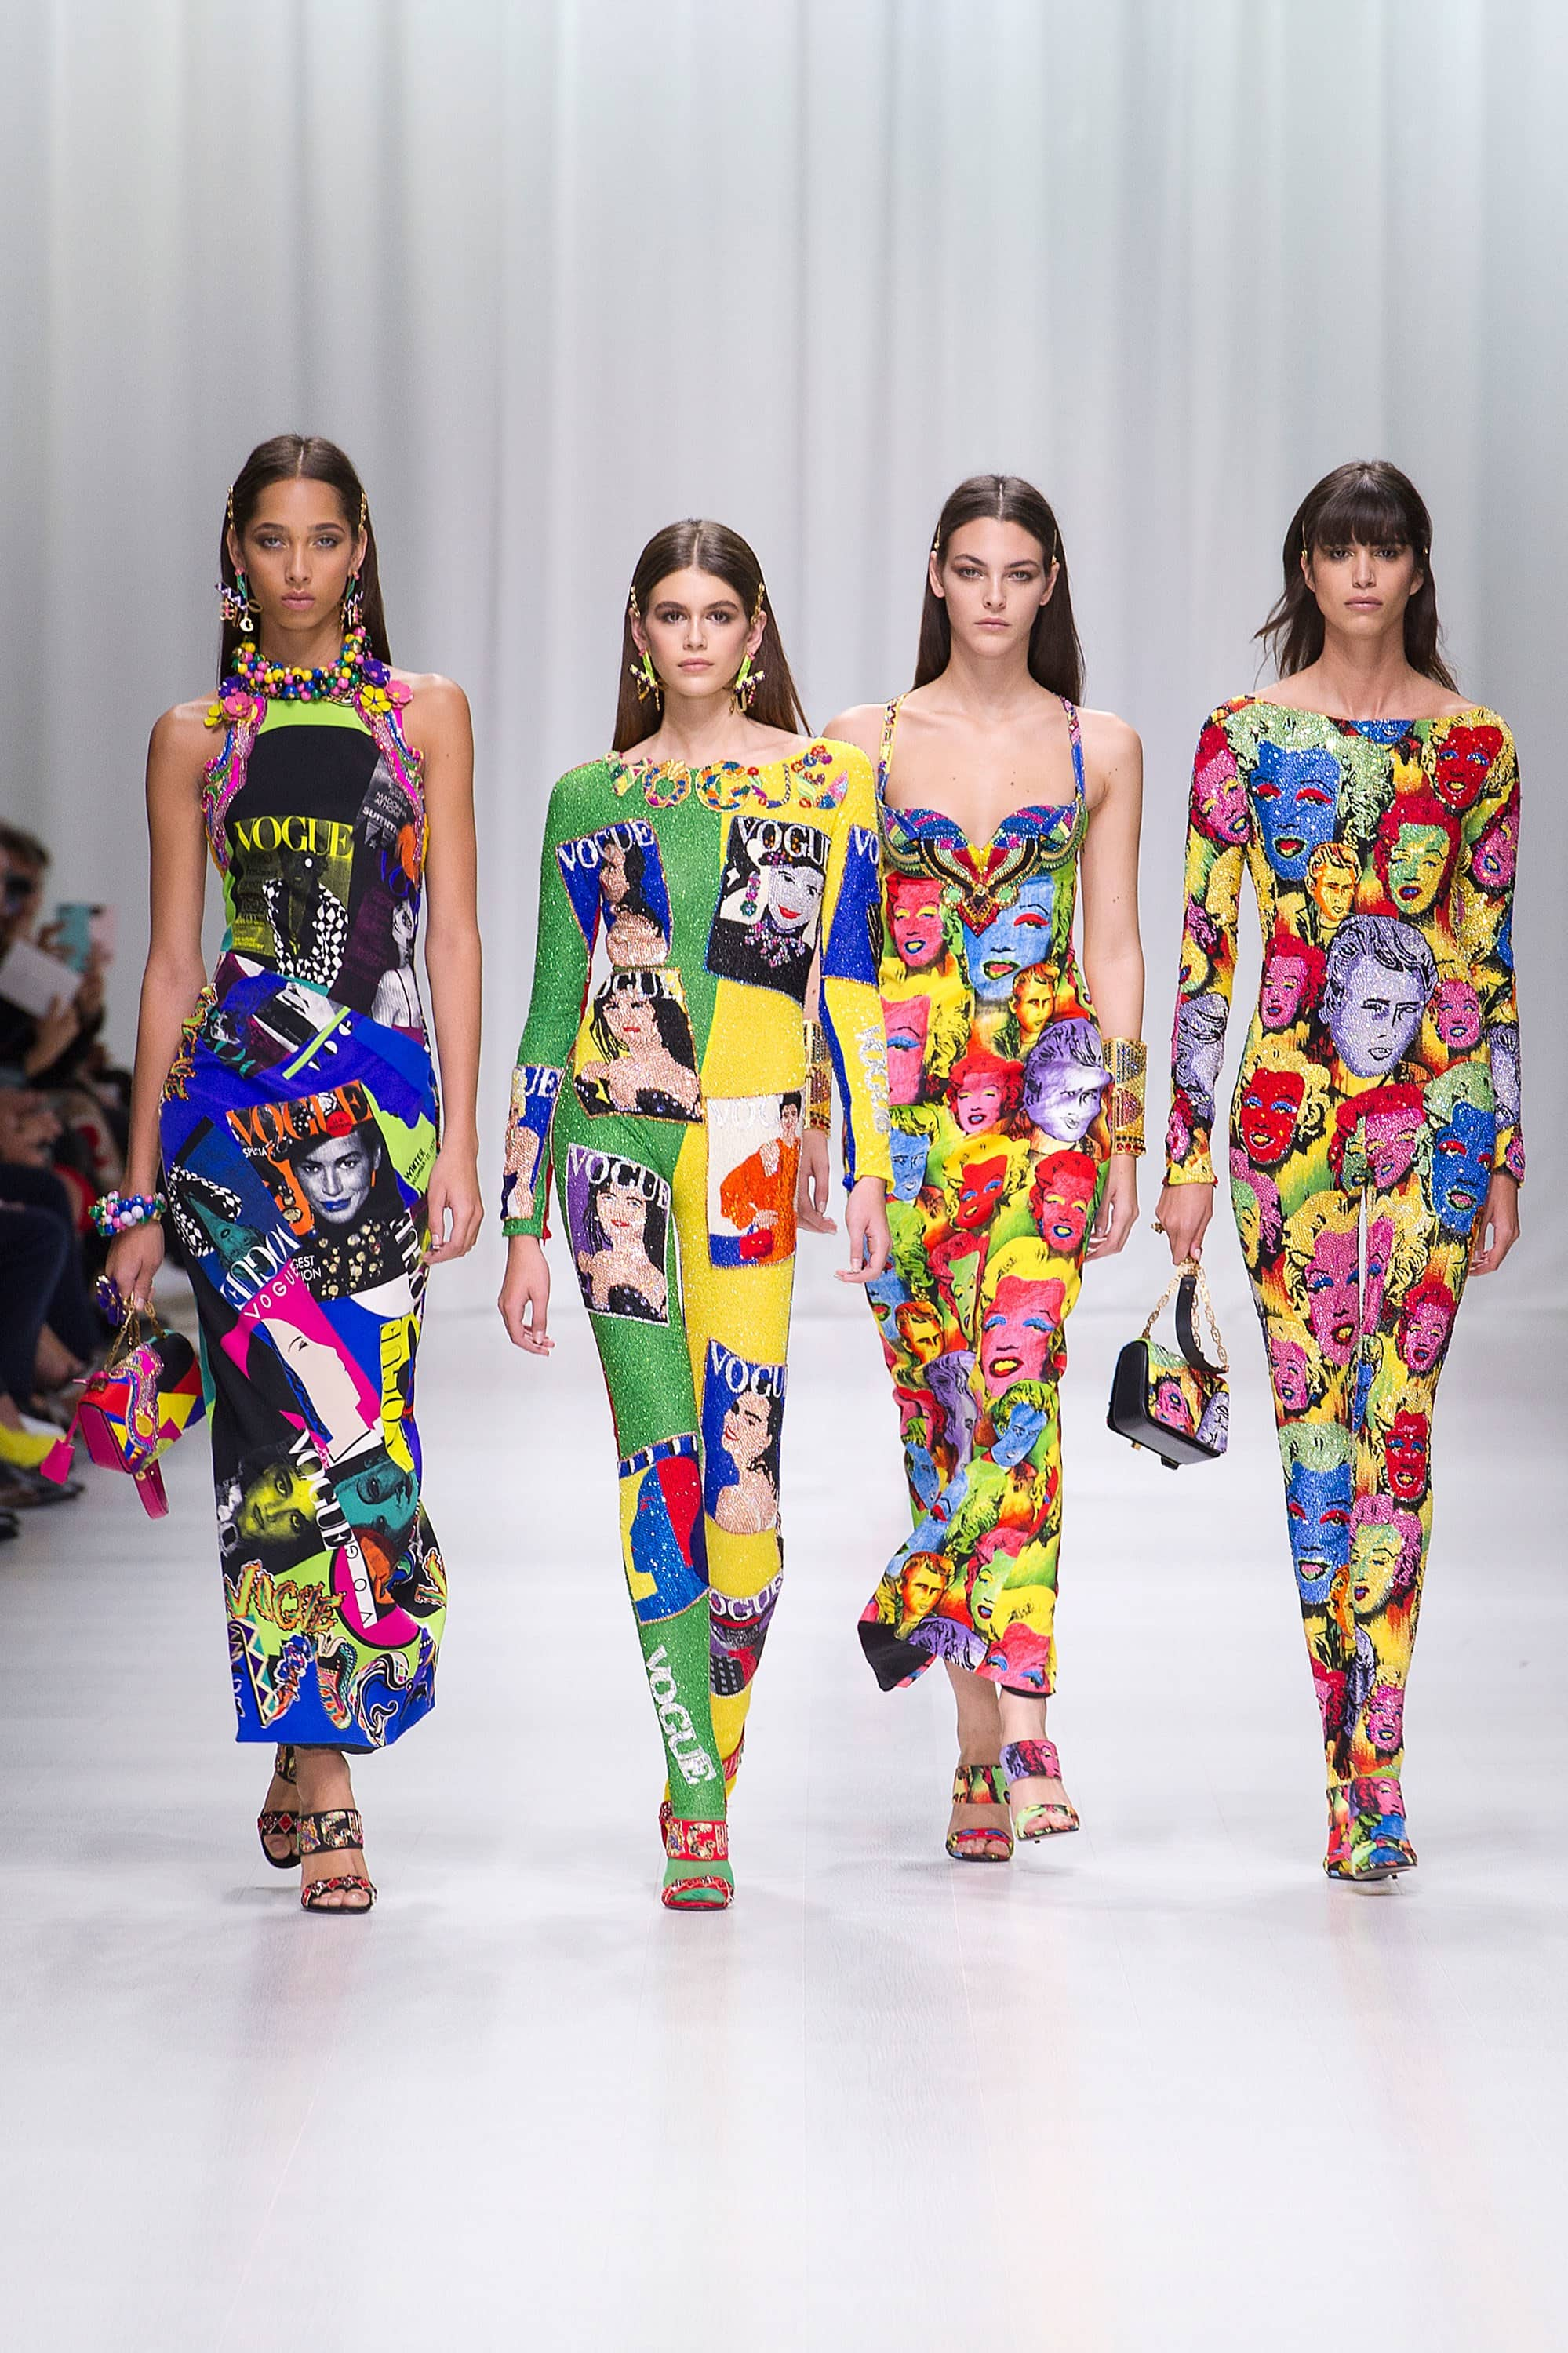 Outfit, Fashion, Fashion Show, Catwalk, Model, Model Life, Runway, Dress, Look, OOTD, Fashion Week, Trend Report, Trends, Trendy, SS18, Spring Summer 2018, NYFW, New York, New York Fashion Week, Runway Walk, Versace, Pop Art